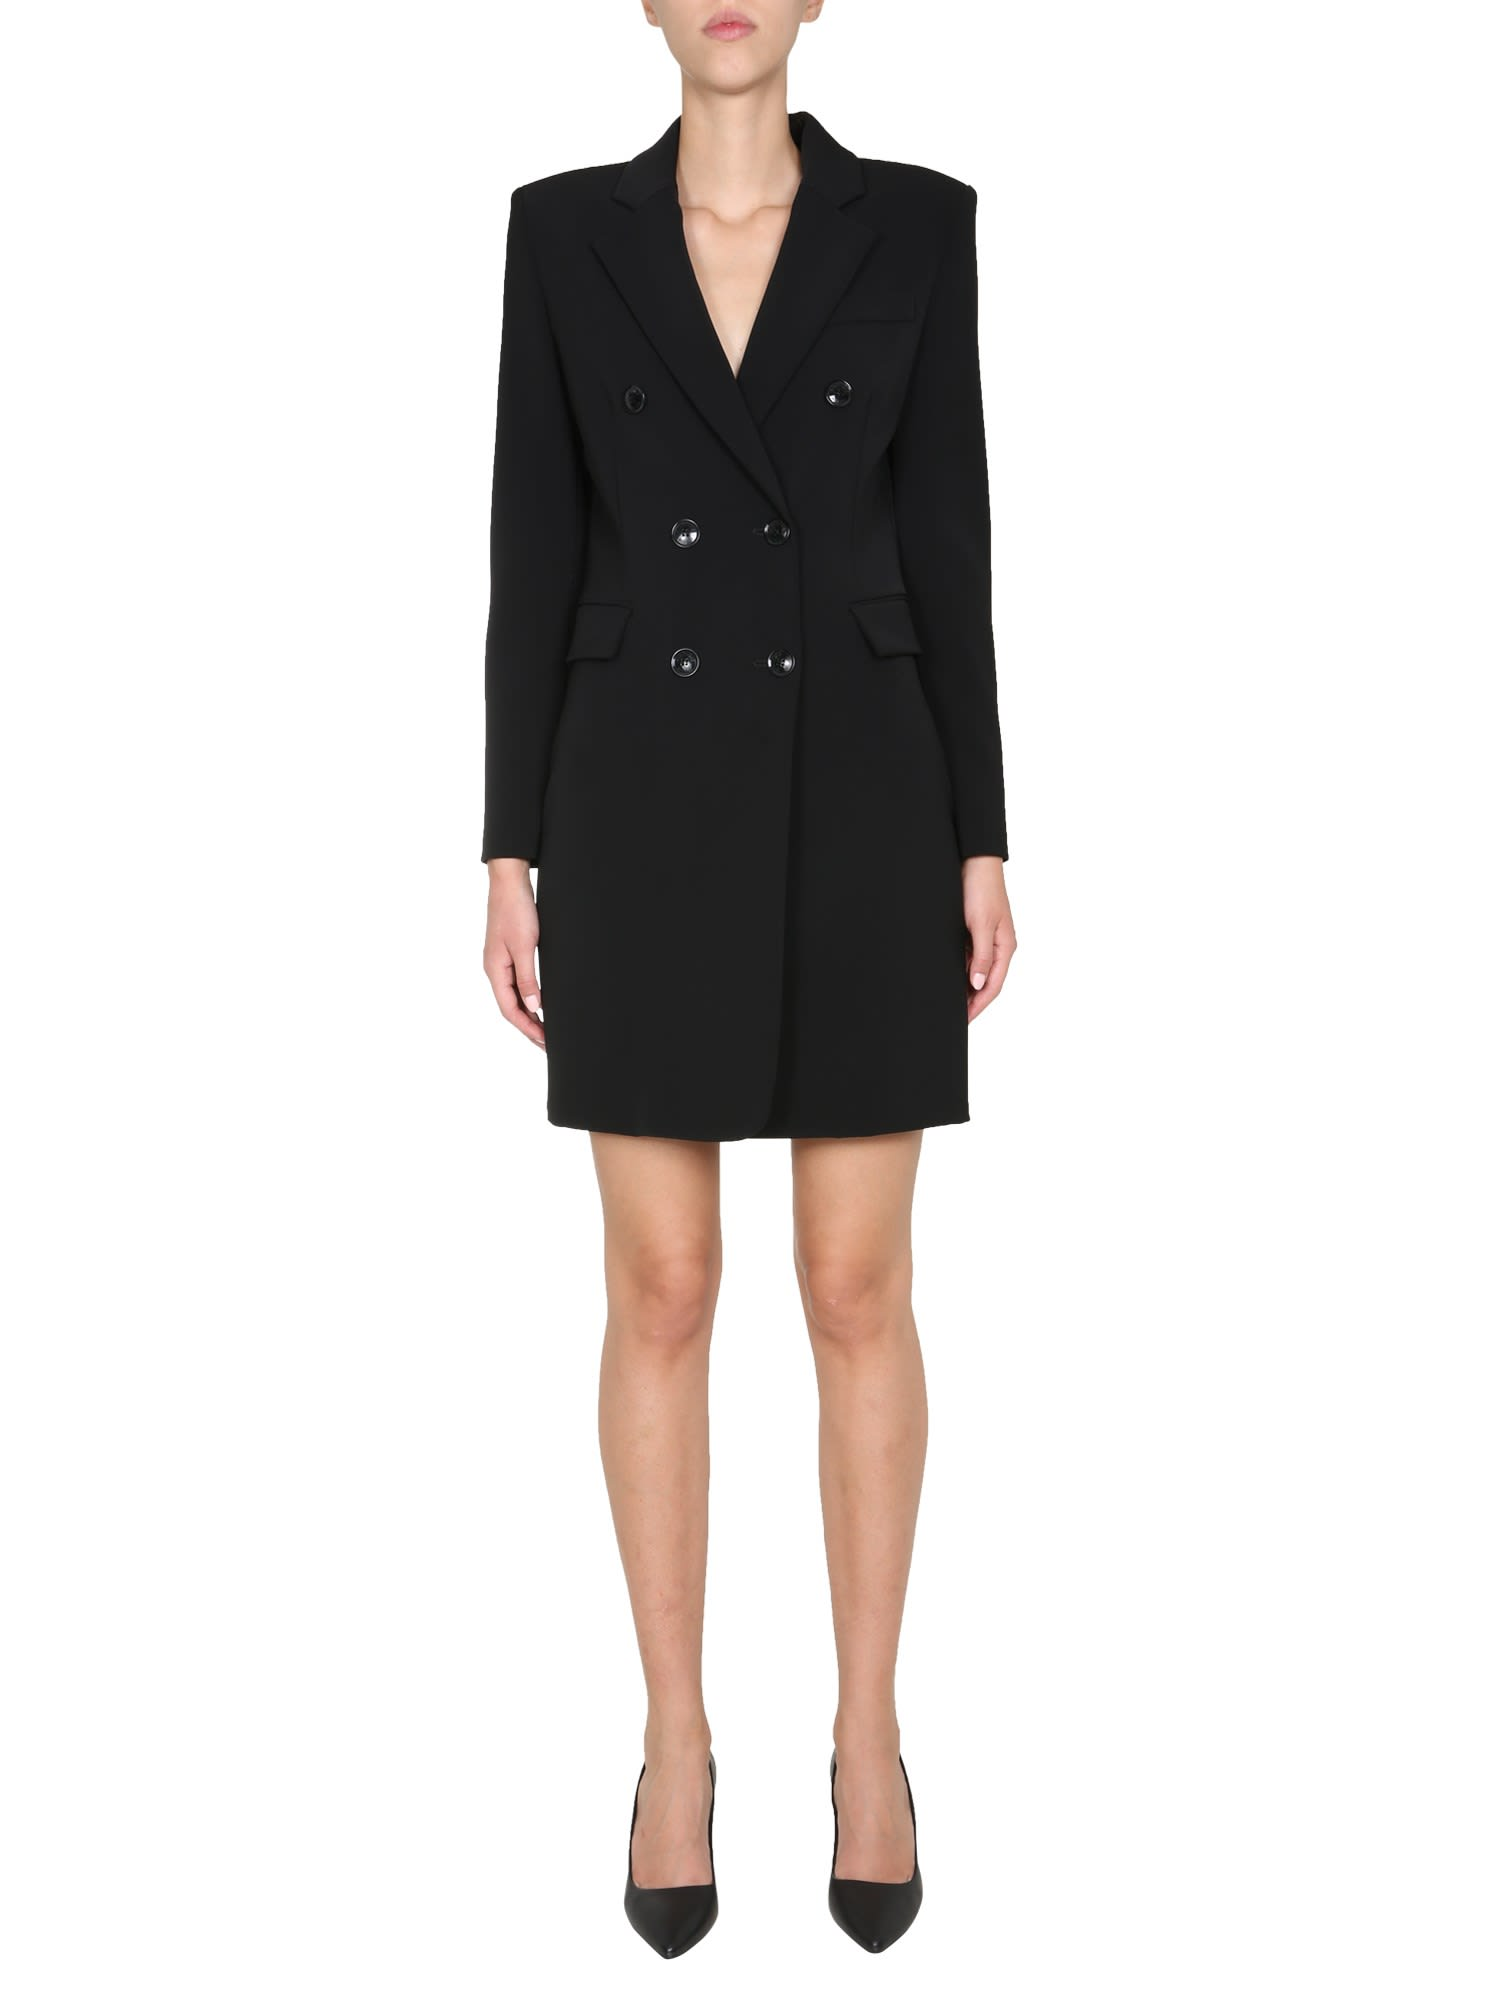 Boutique Moschino Double-breasted Dress